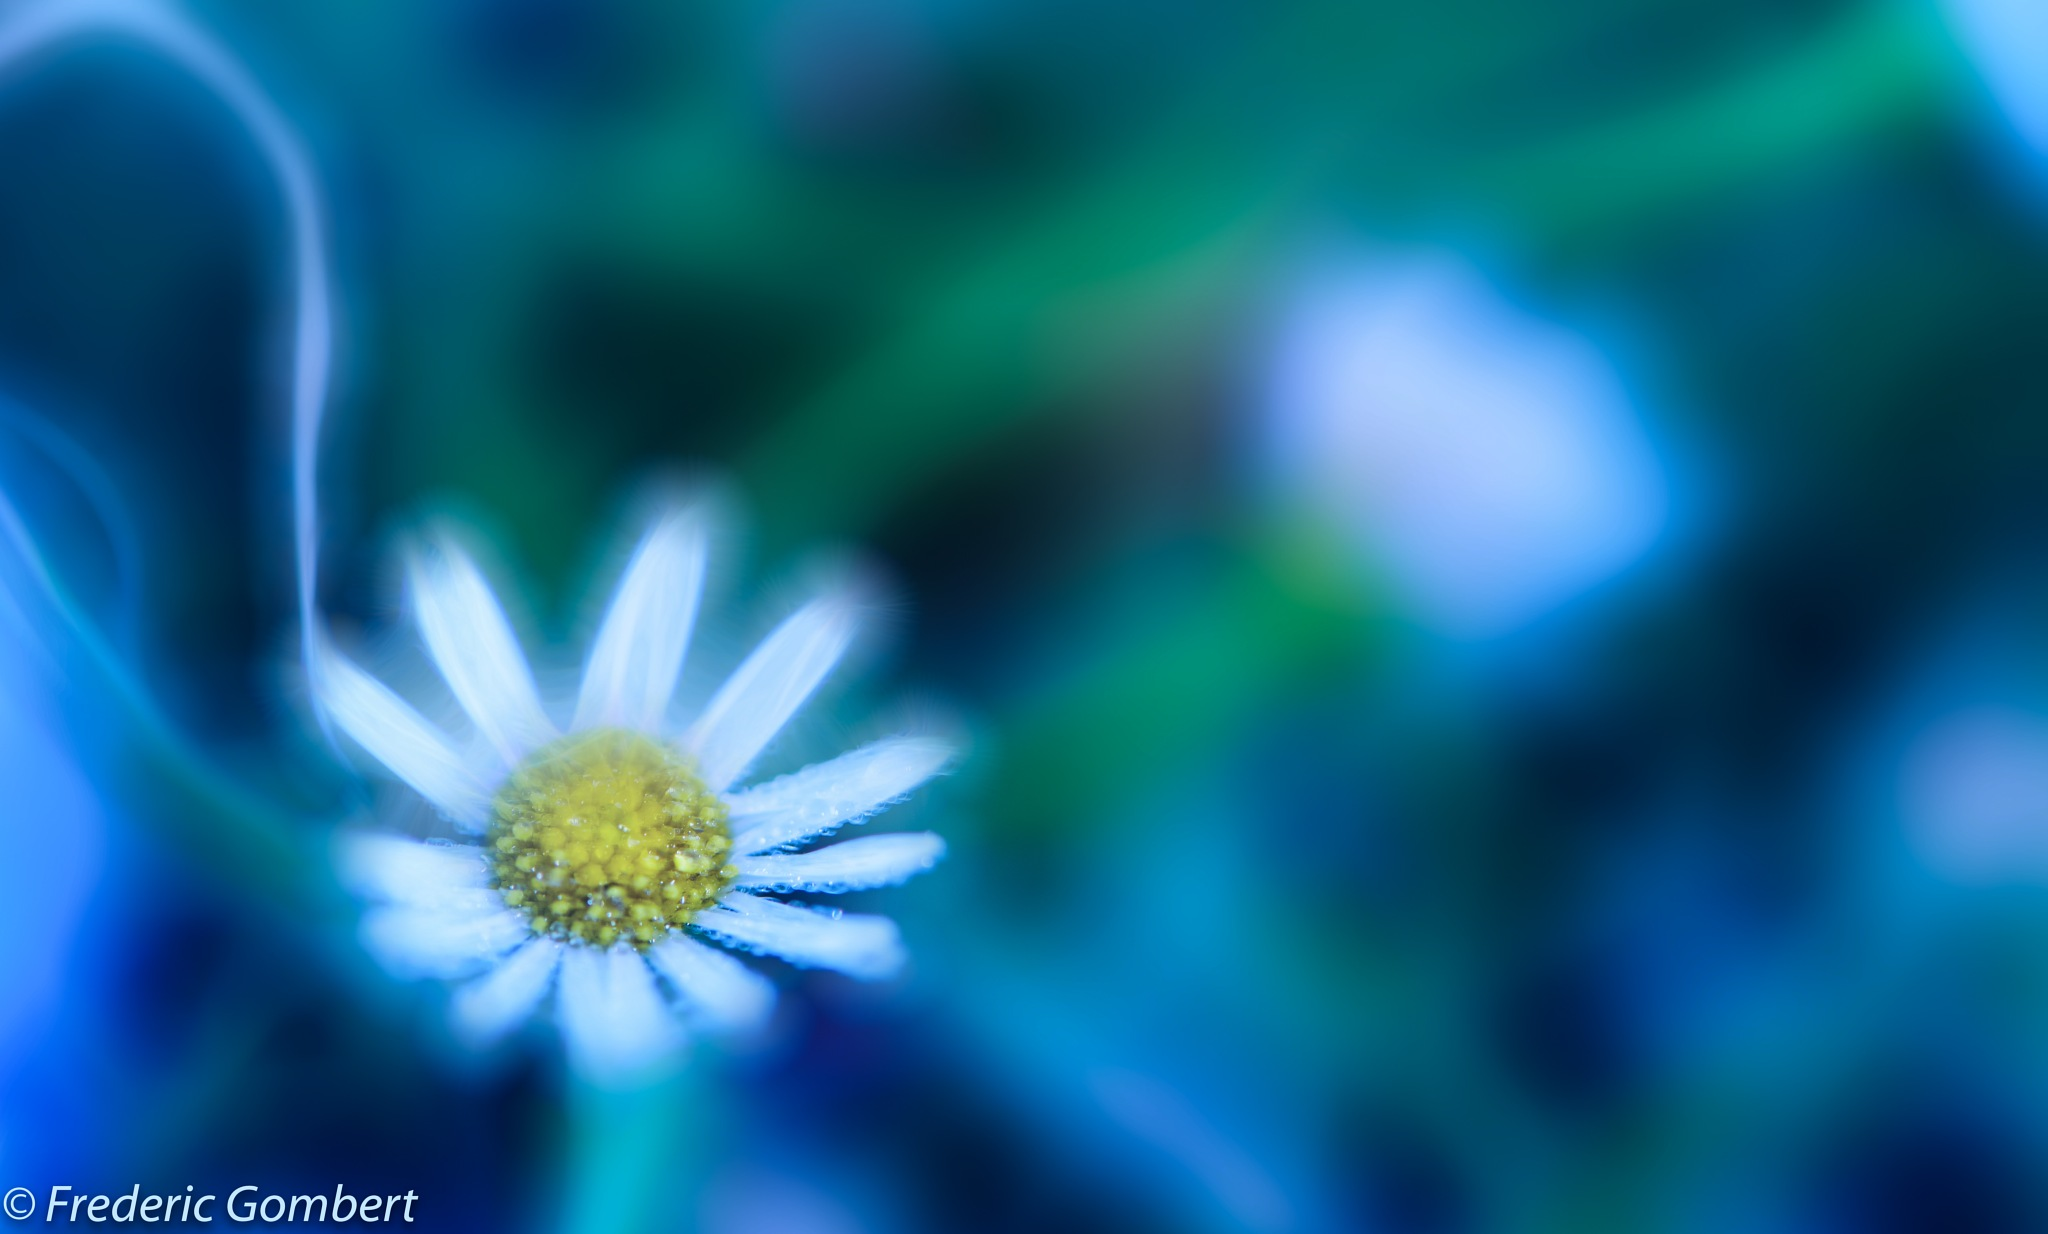 doubt by Frederic Gombert